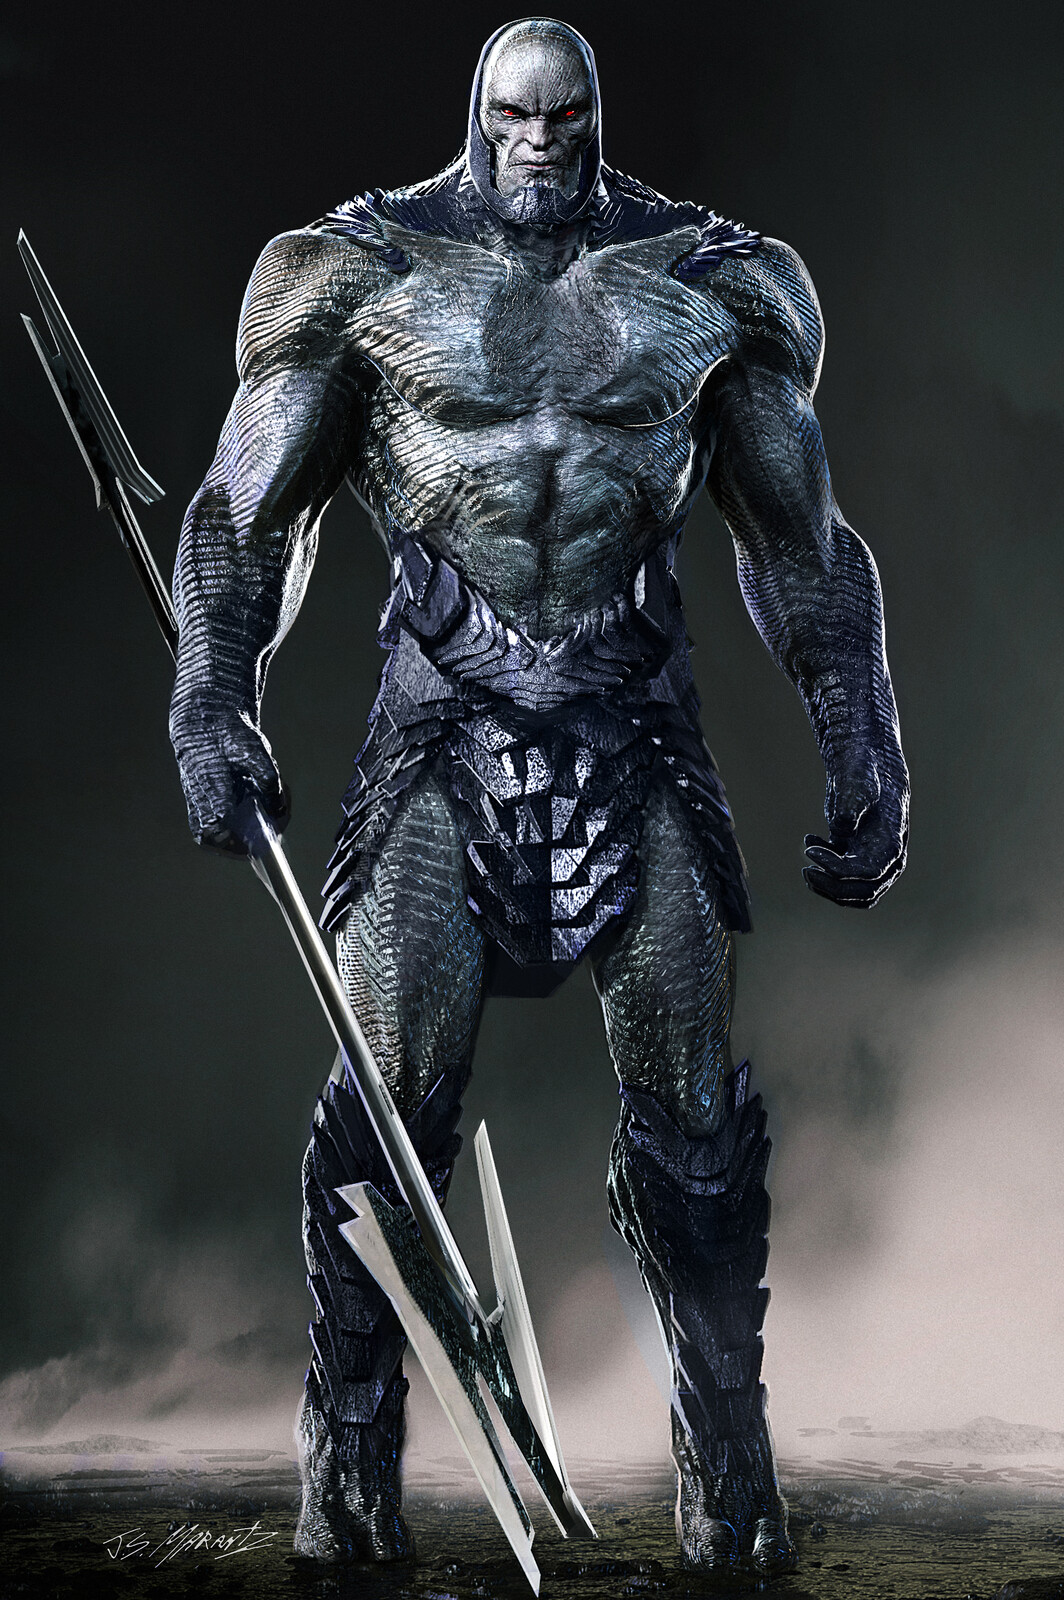 Darkseid / Uxas Designs for Zack Snyder's Justice League